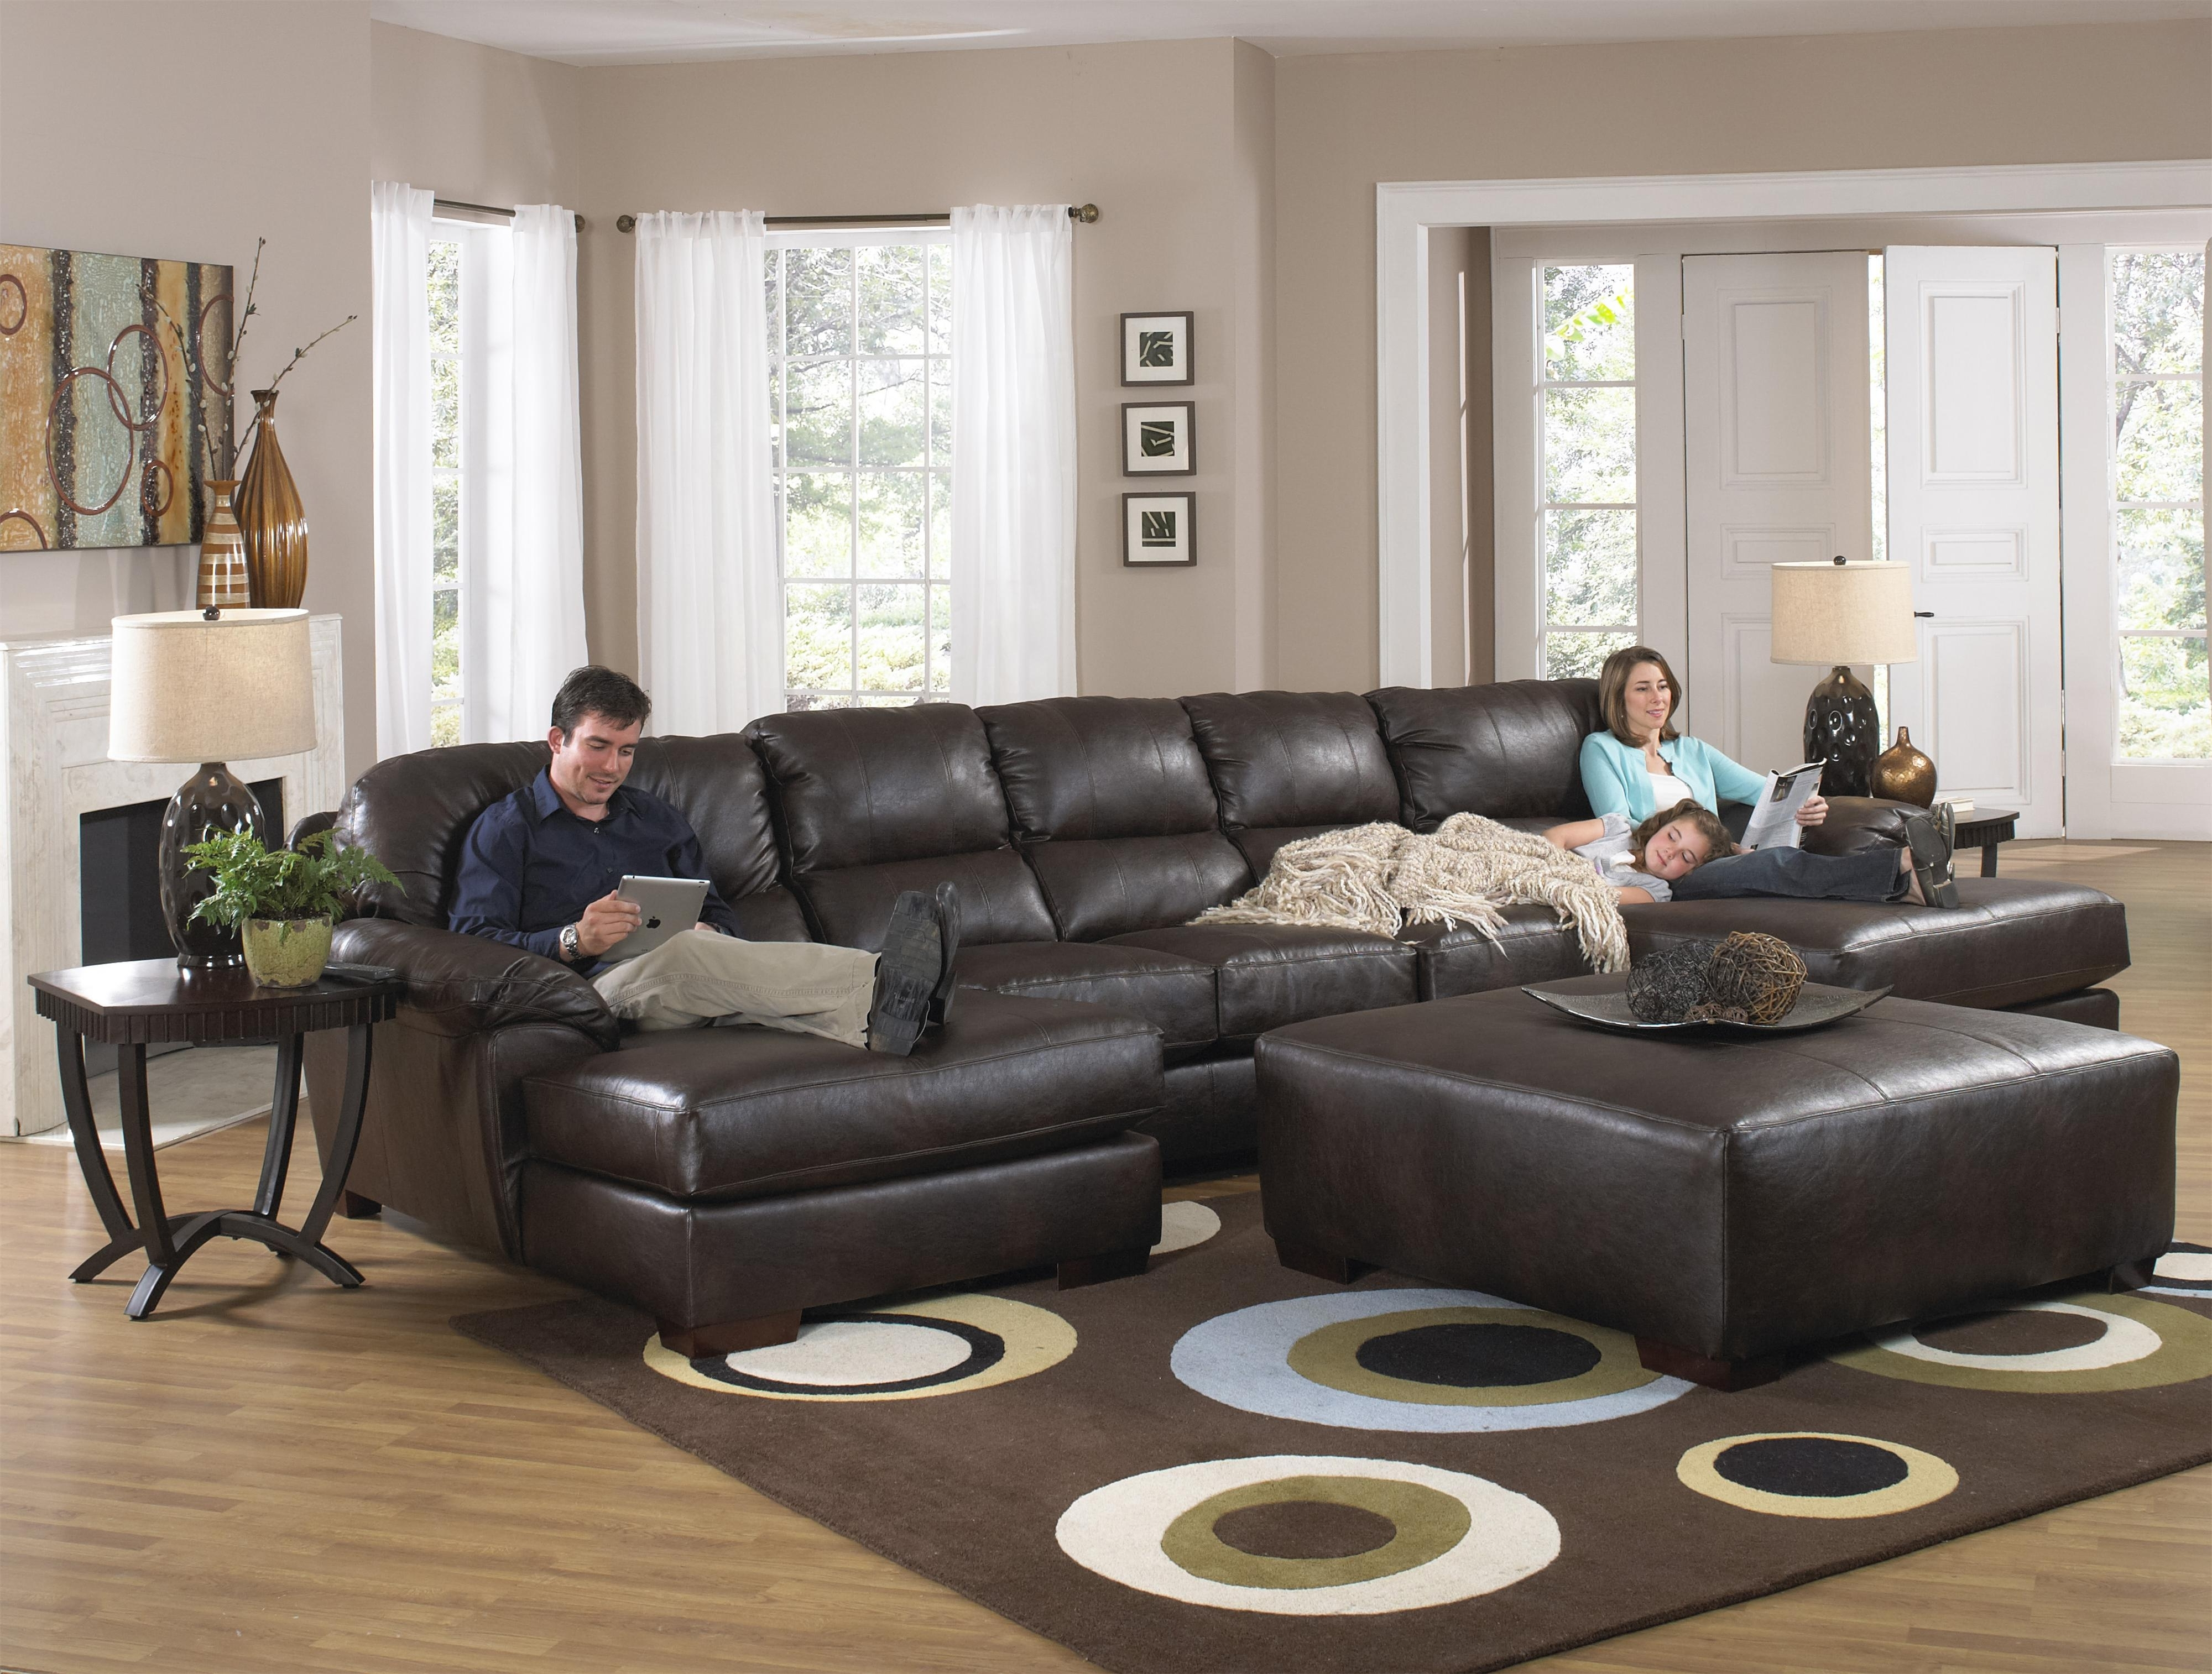 2017 Two Chaise Sectional Sofa With Five Total Seatsjackson With Regard To Sectional Chaise Sofas (View 1 of 15)